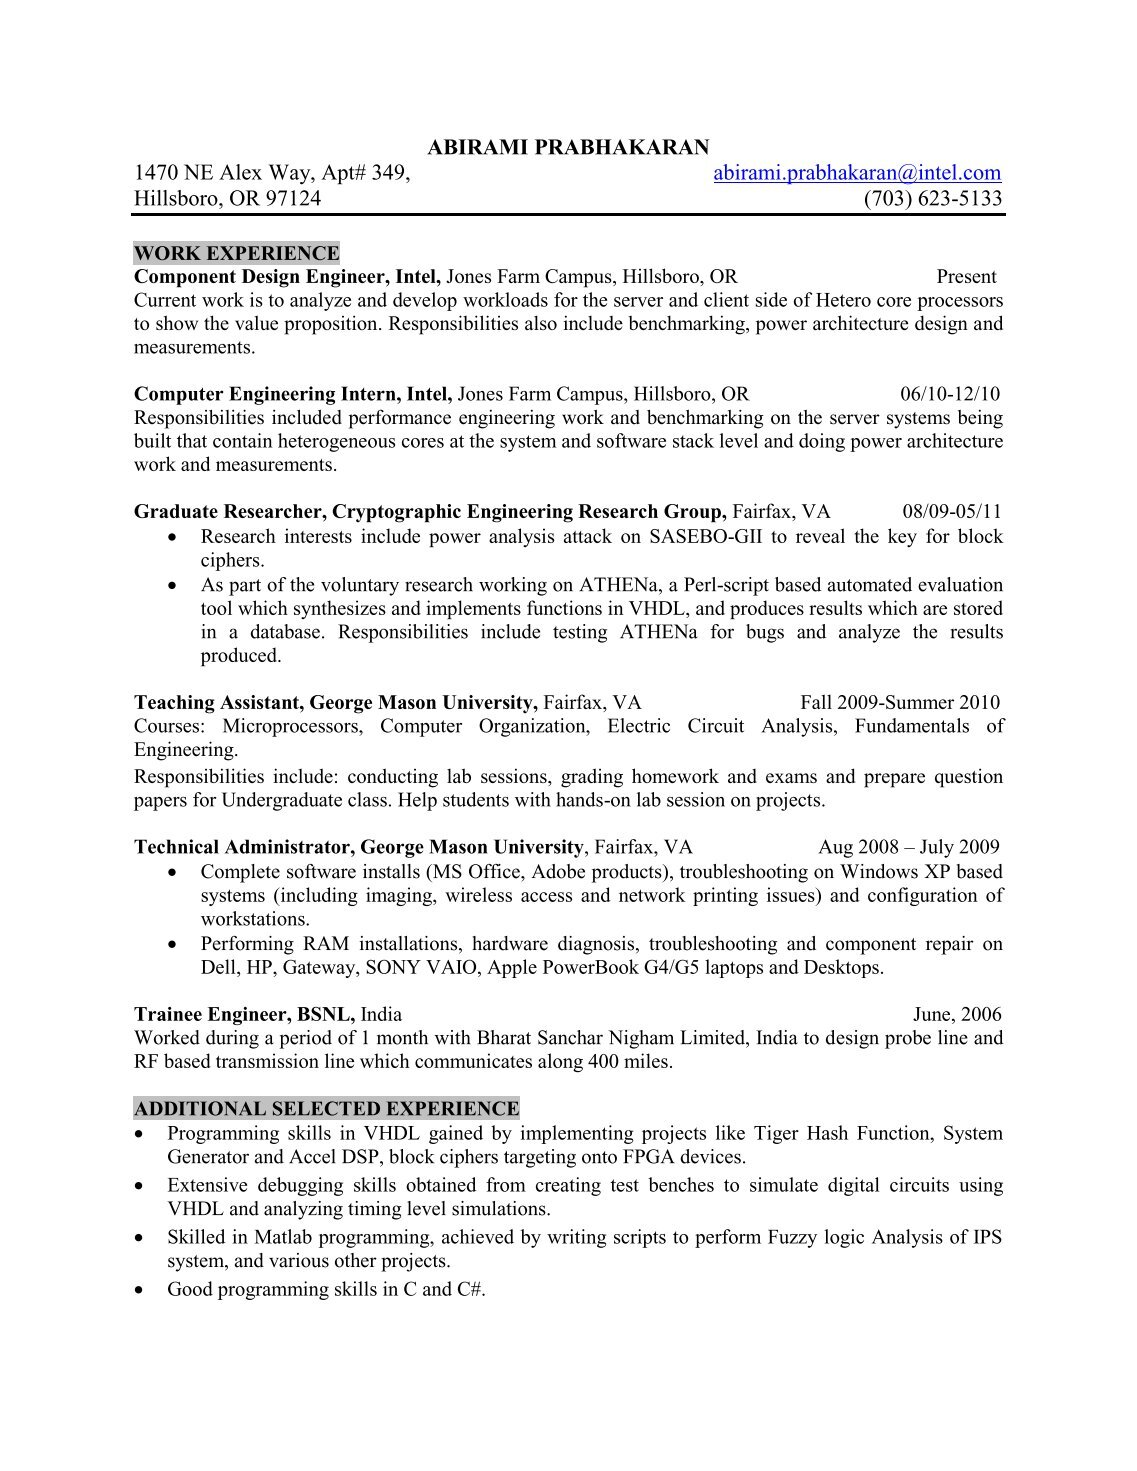 sample resume for engineering internship component engineer sample resumeml intel component design engineer sample resume plantation home - Rf Design Engineer Sample Resume